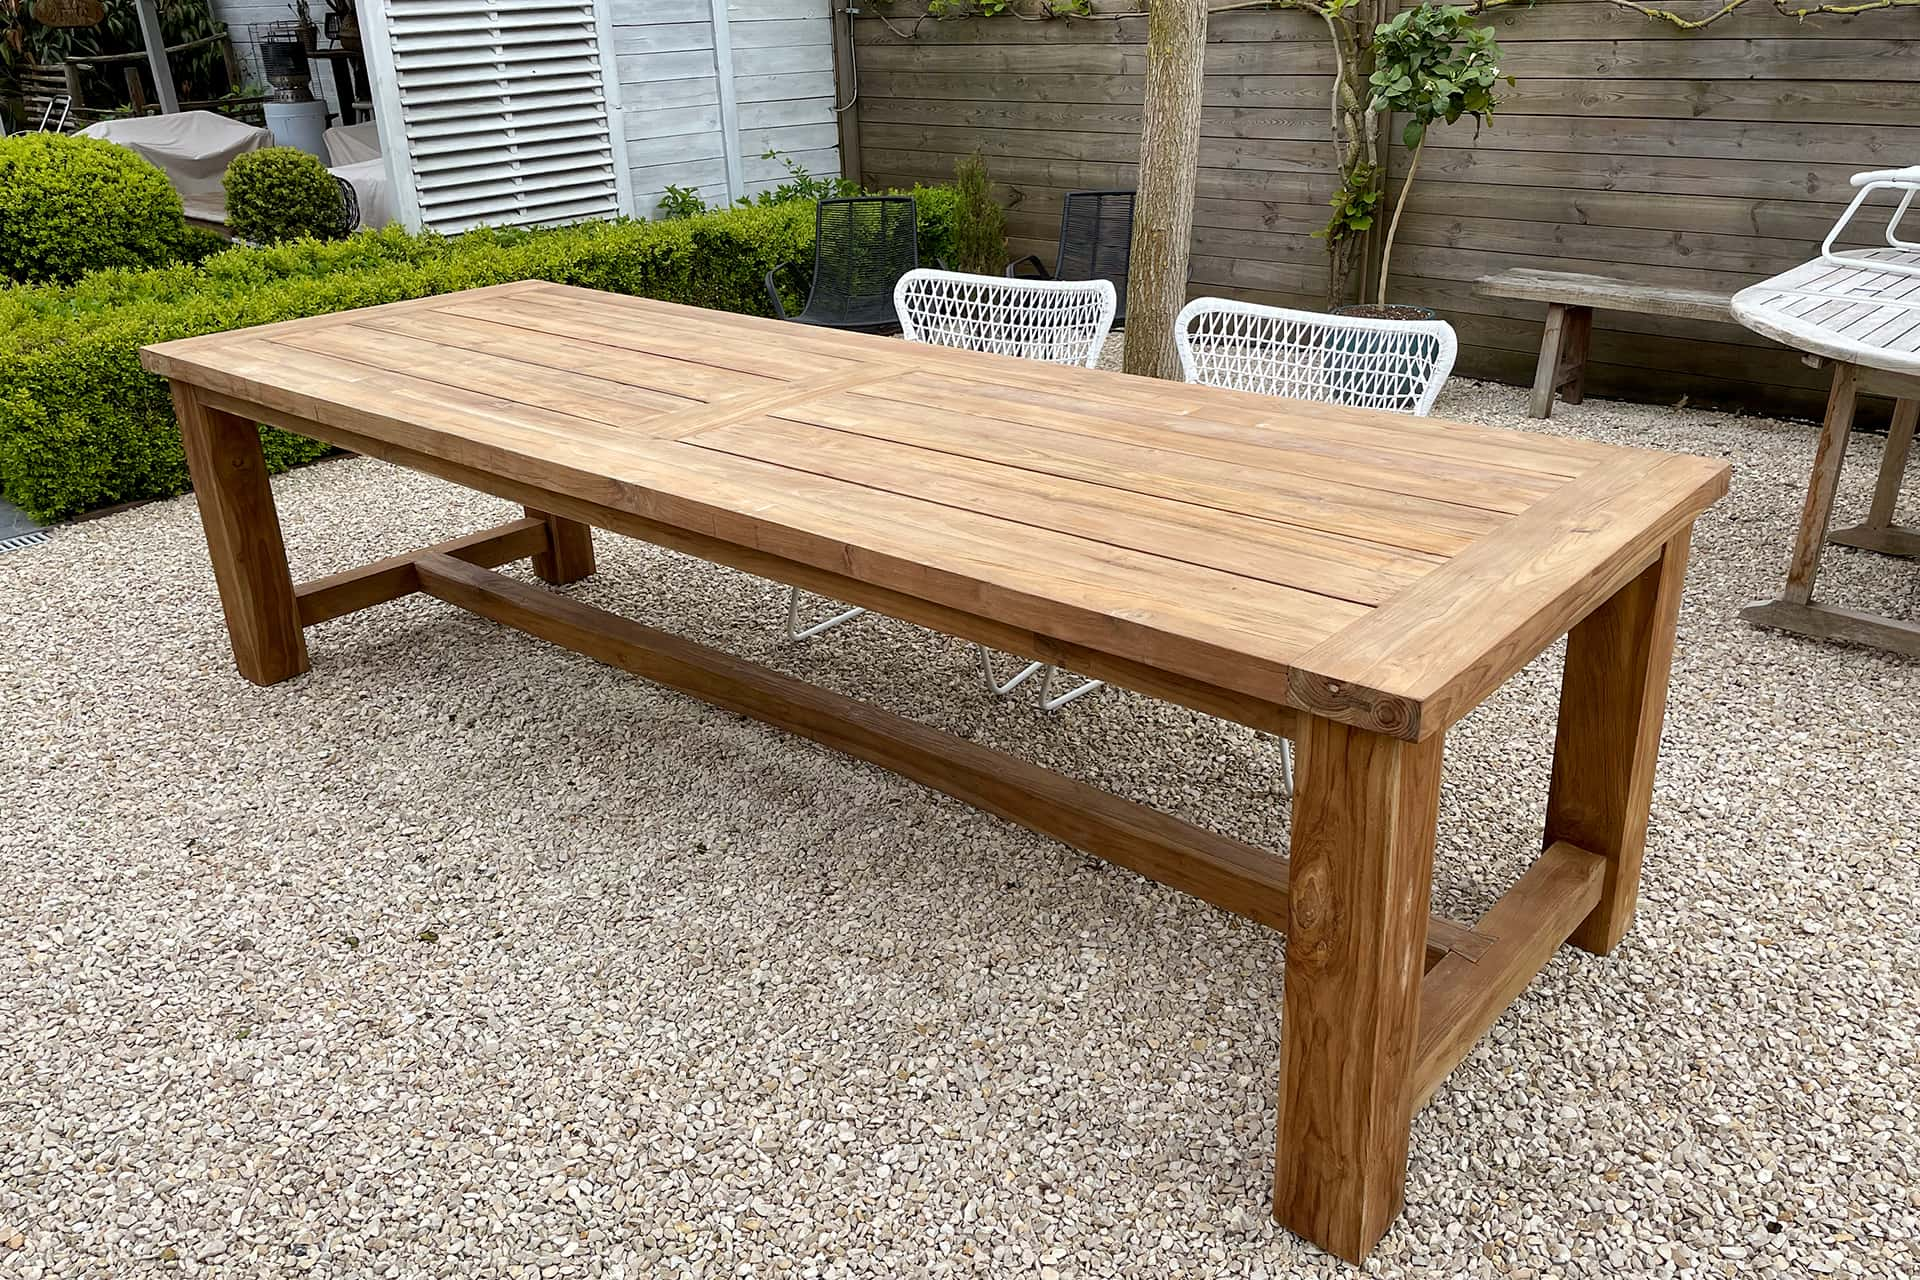 Teak Tangguh O300K Old | solid wood garden table with sturdy legs in H-profile. Rural garden tables in solid old teak from Indonesia - TEAK2.